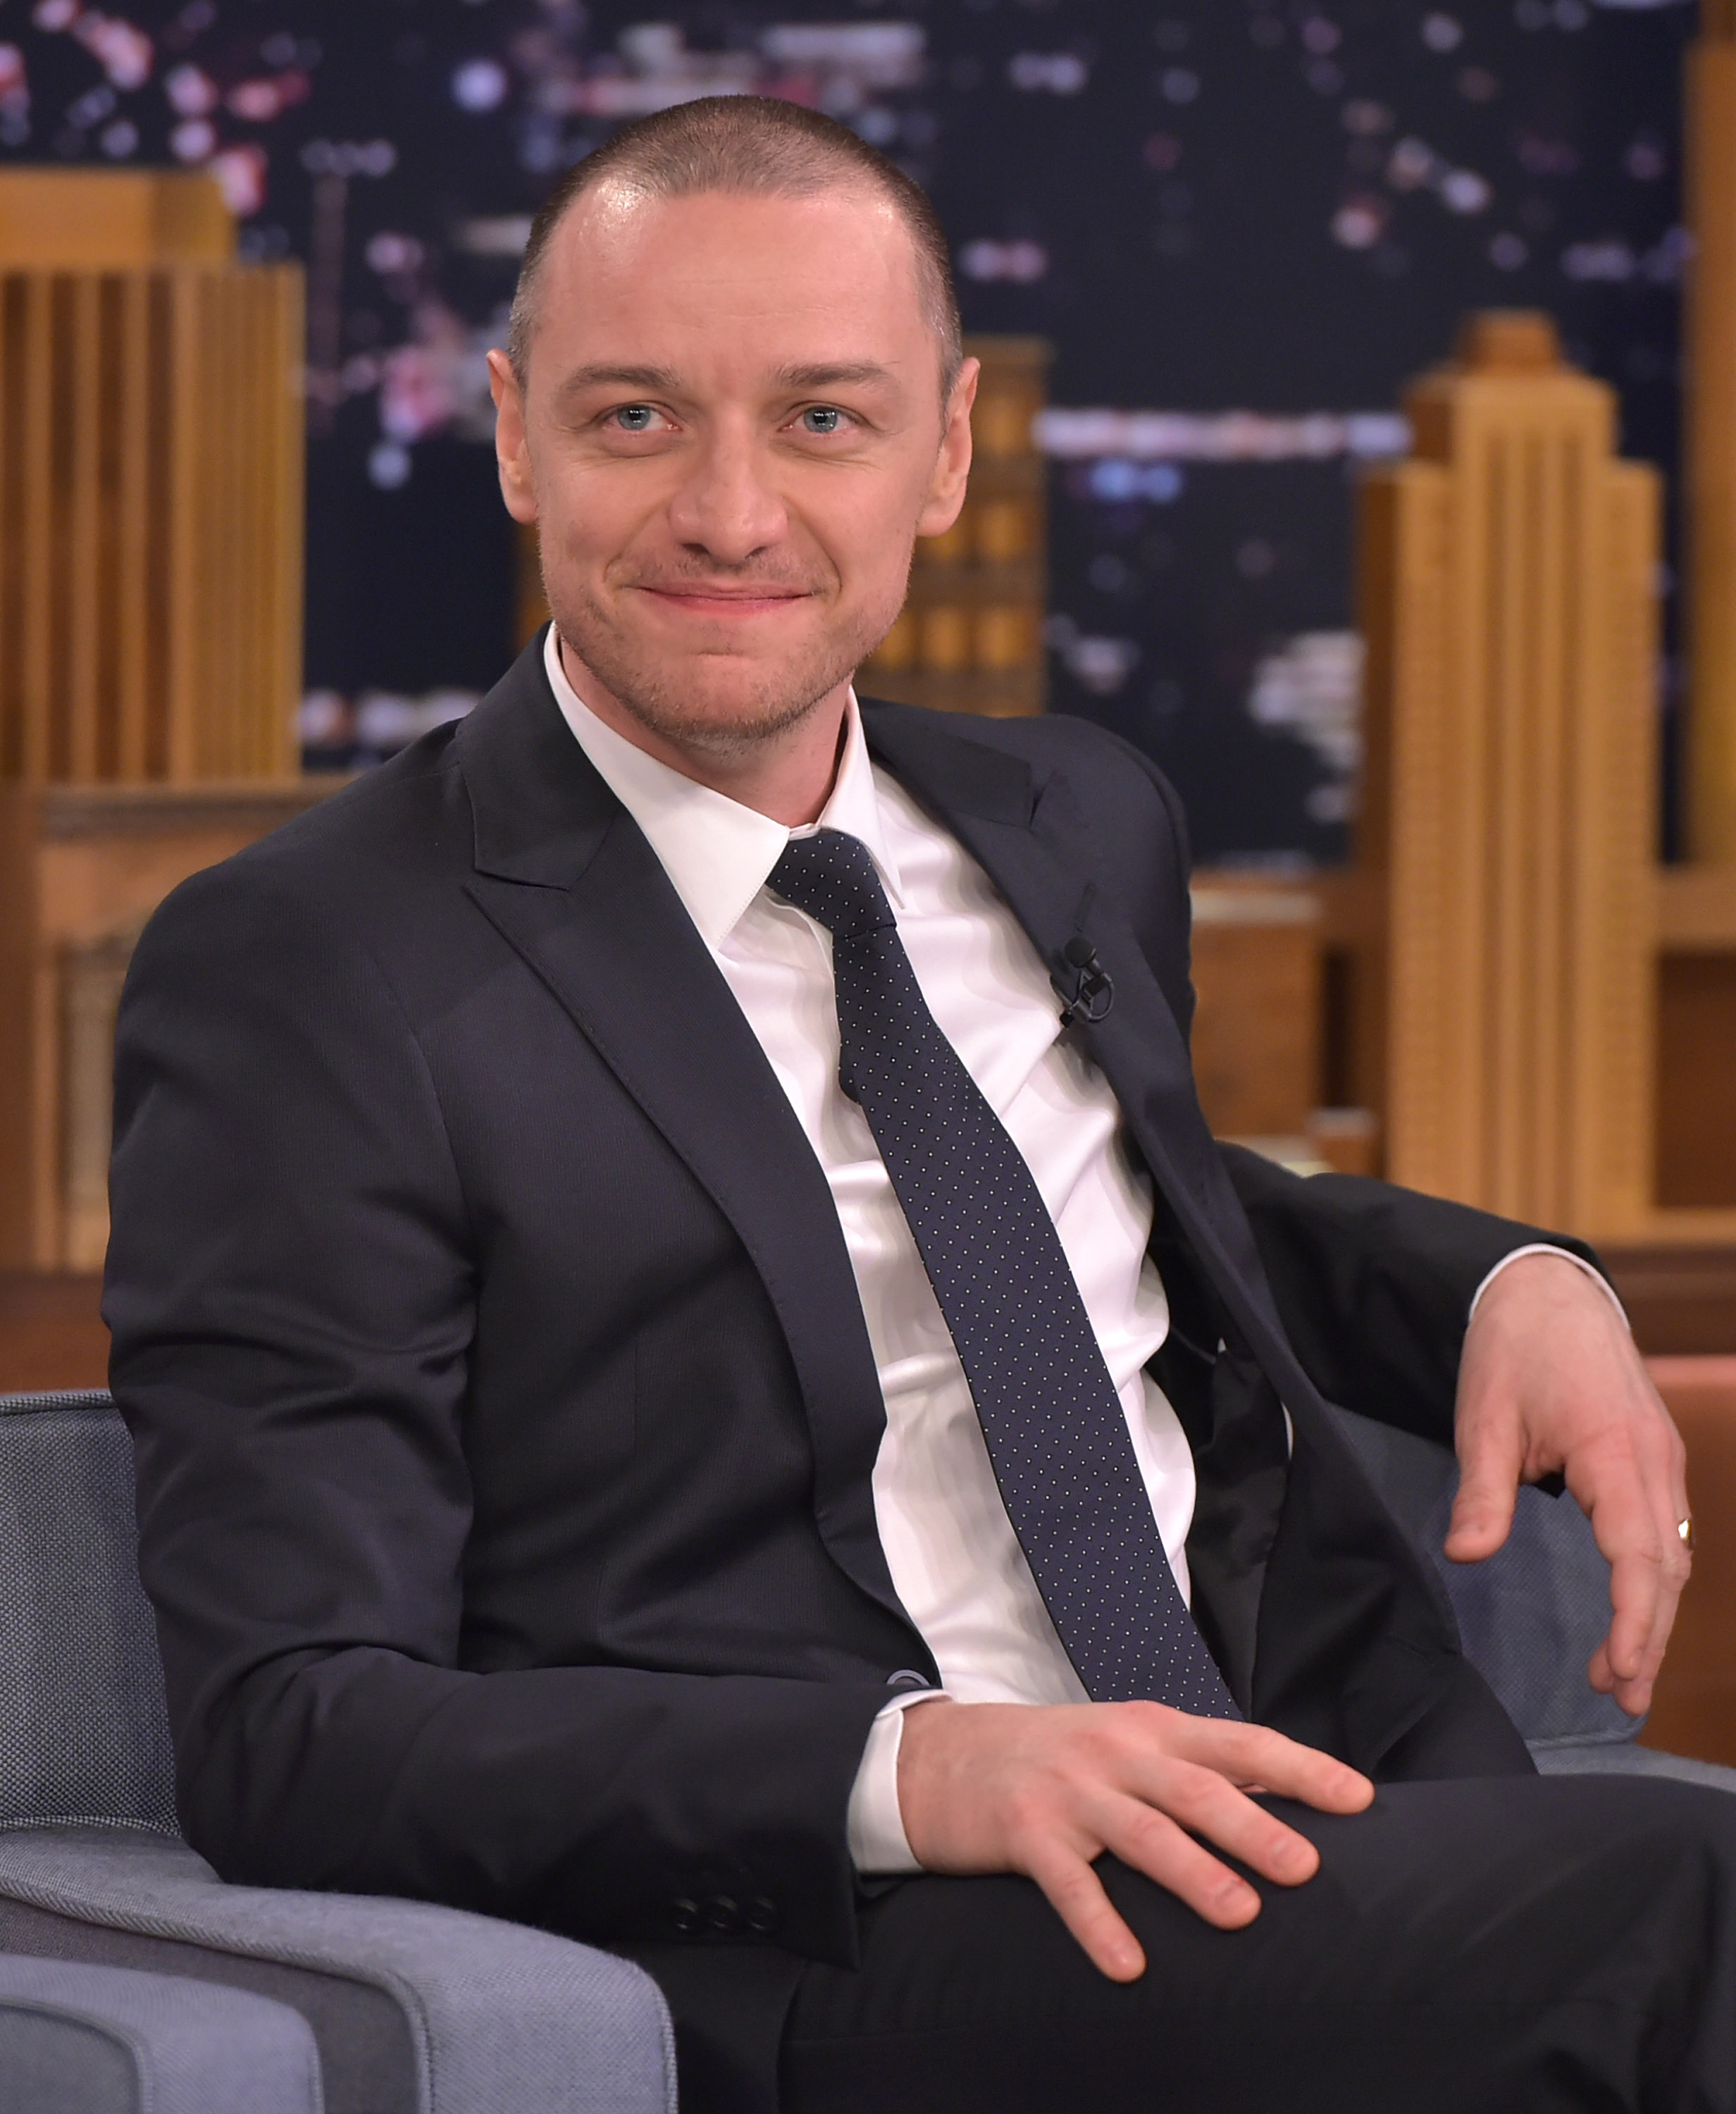 James McAvoy visits The Tonight Show Starring Jimmy Fallon at Rockefeller Center on Nov. 11, 2015 in New York City.